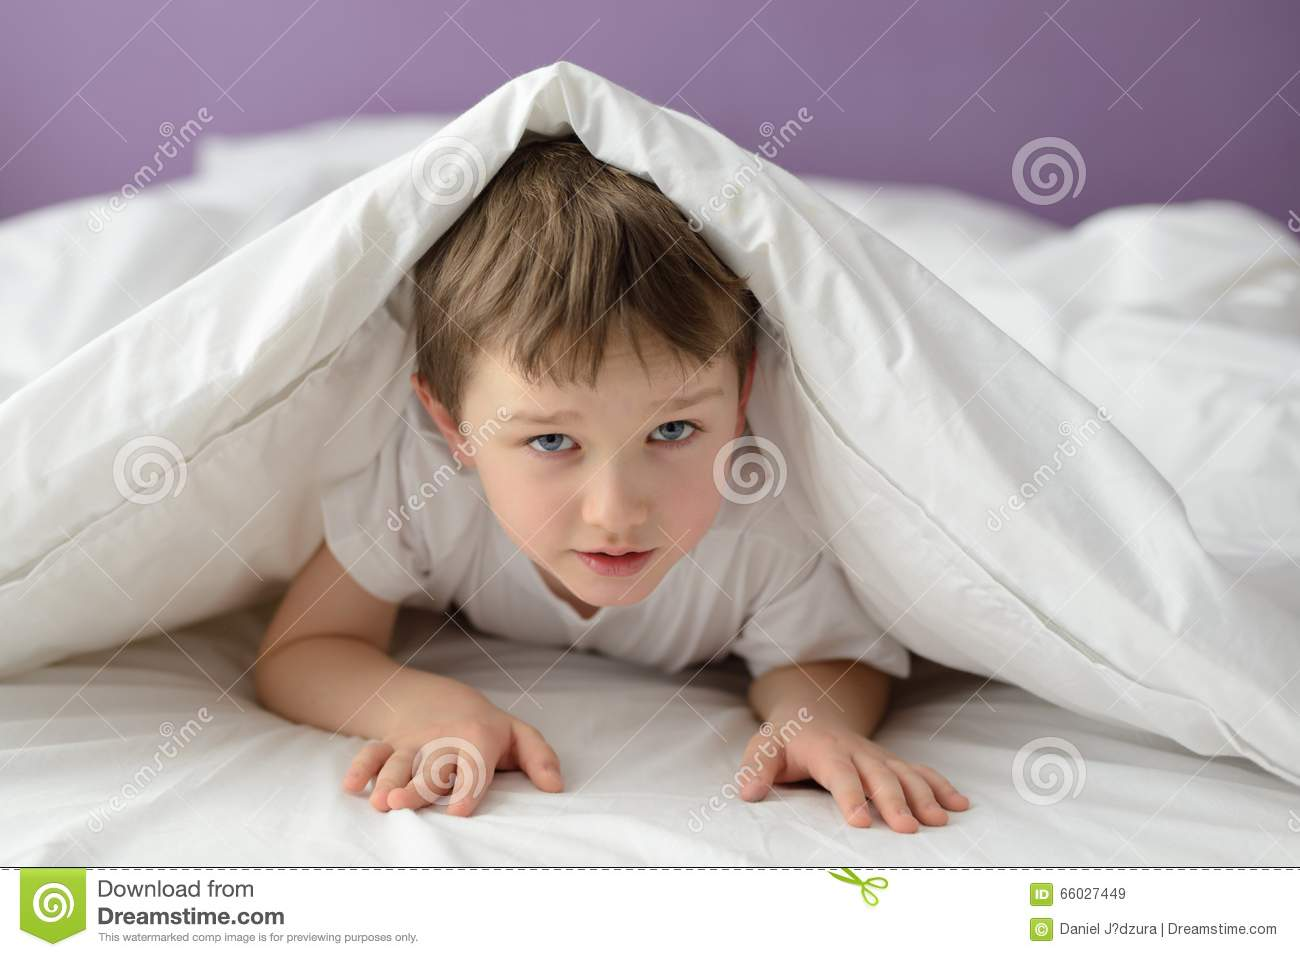 7 years old boy hiding in bed under a white blanket or for Beds for 13 year olds